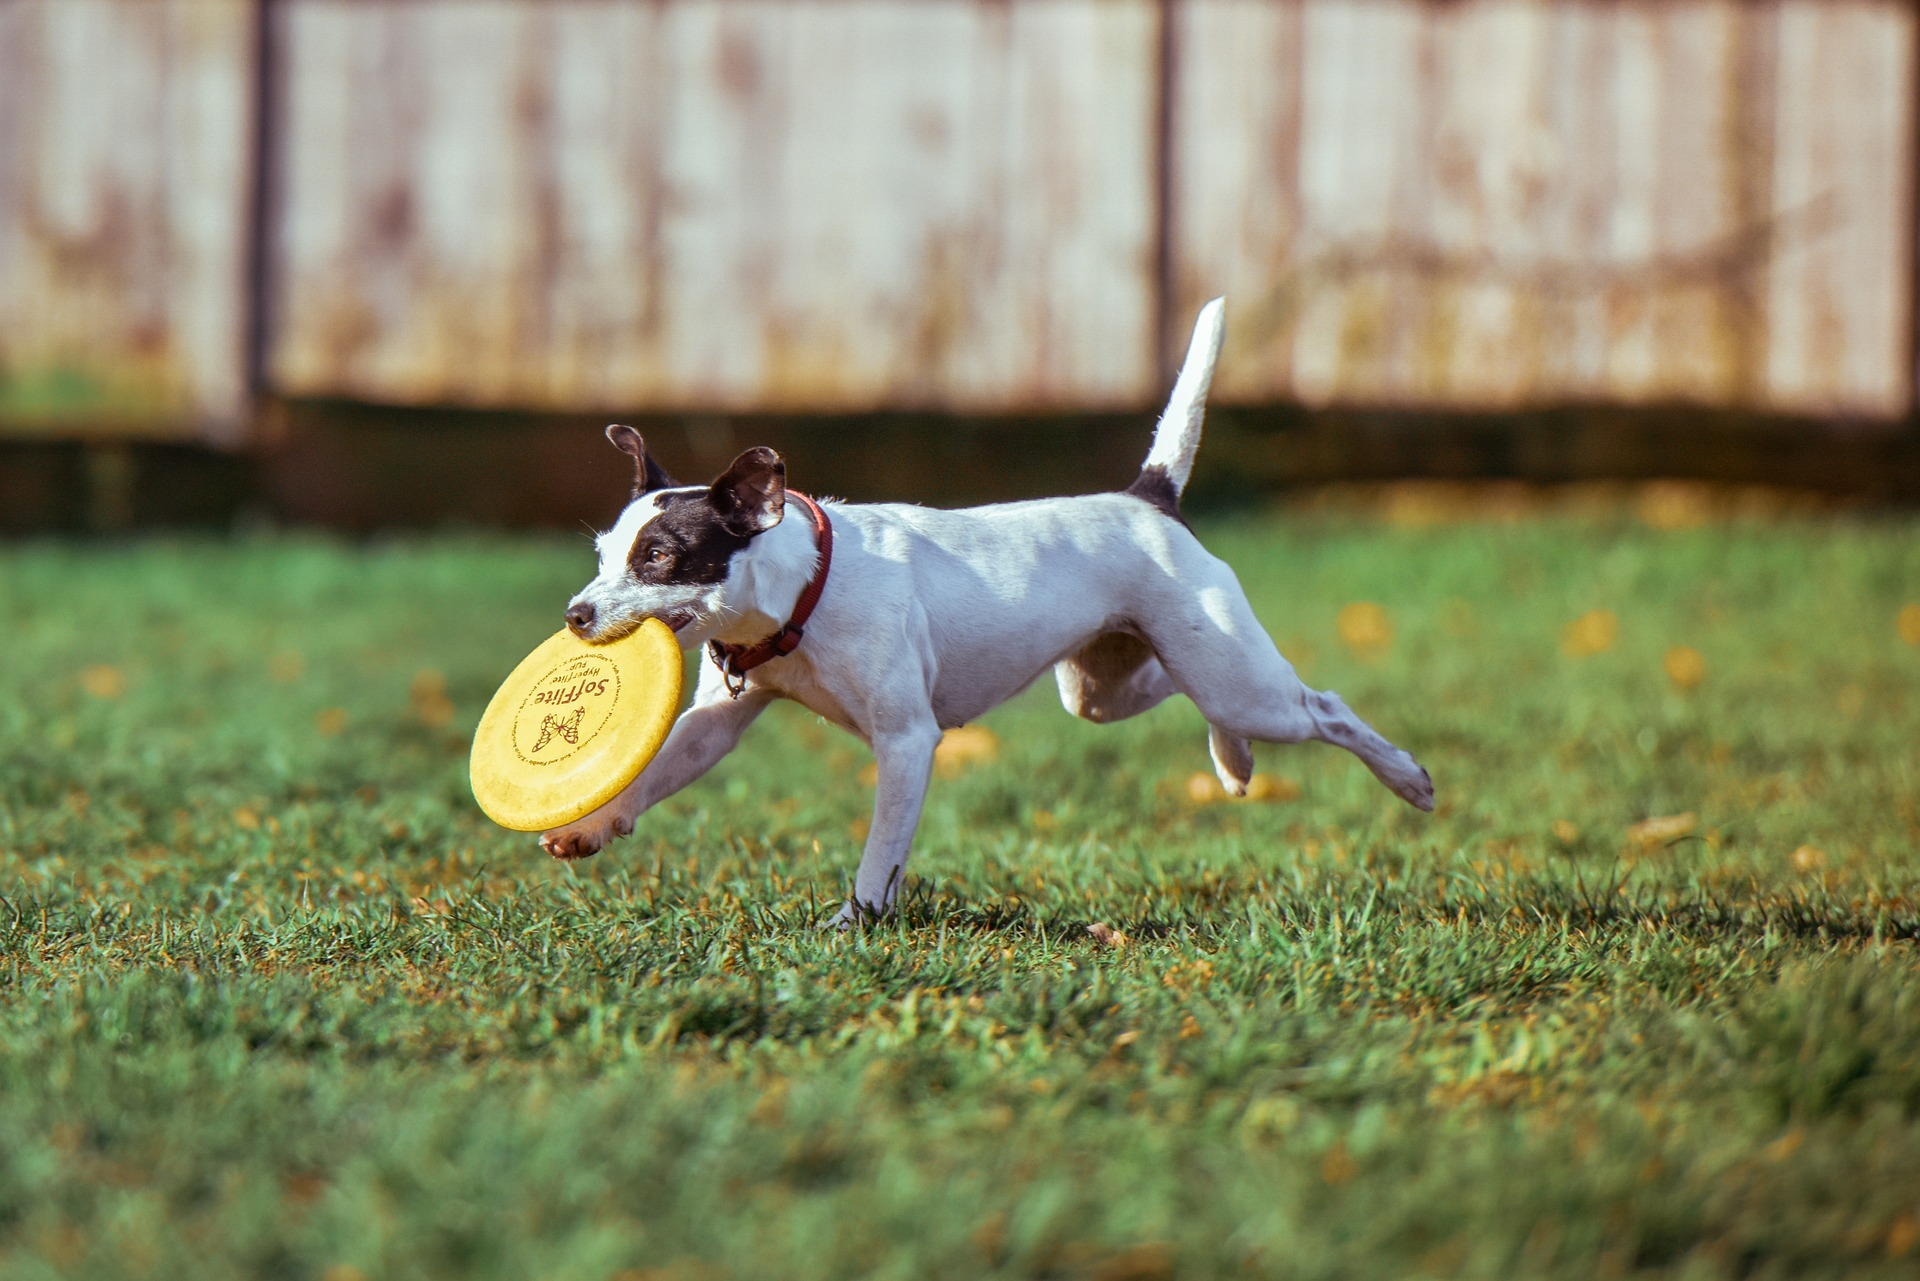 Small dog running through a yard with a frisbee in it's mouth